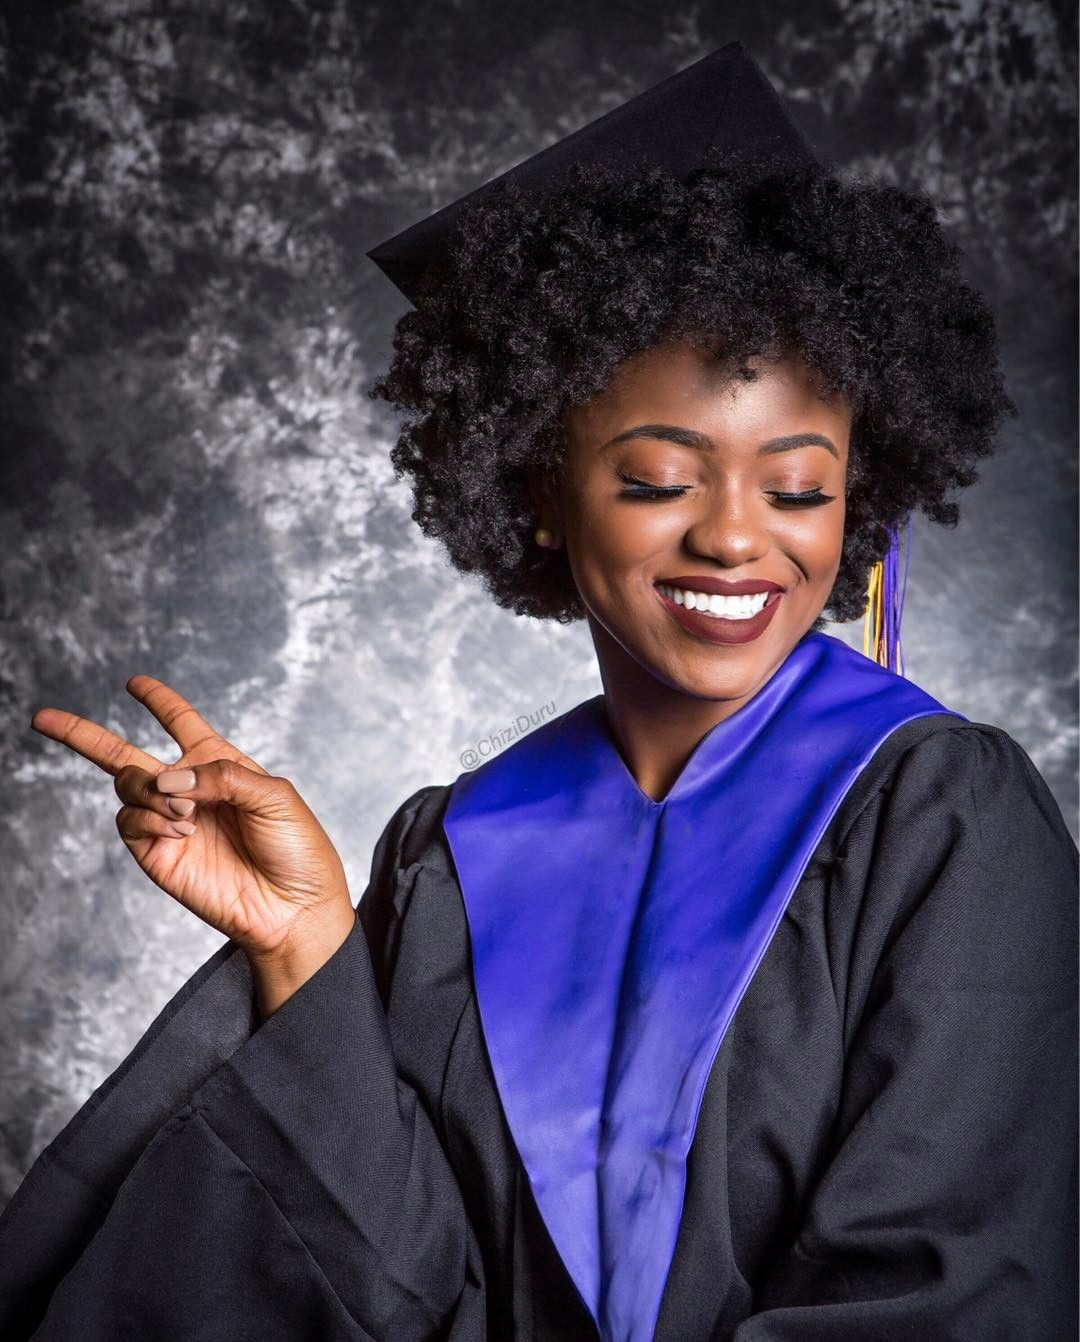 Vlogger Chizi Duru Shows How To Make A Graduation Hat Fit Over Her Voluminous Hair Sh Graduation Hairstyles With Cap Natural Hair Styles Graduation Hairstyles